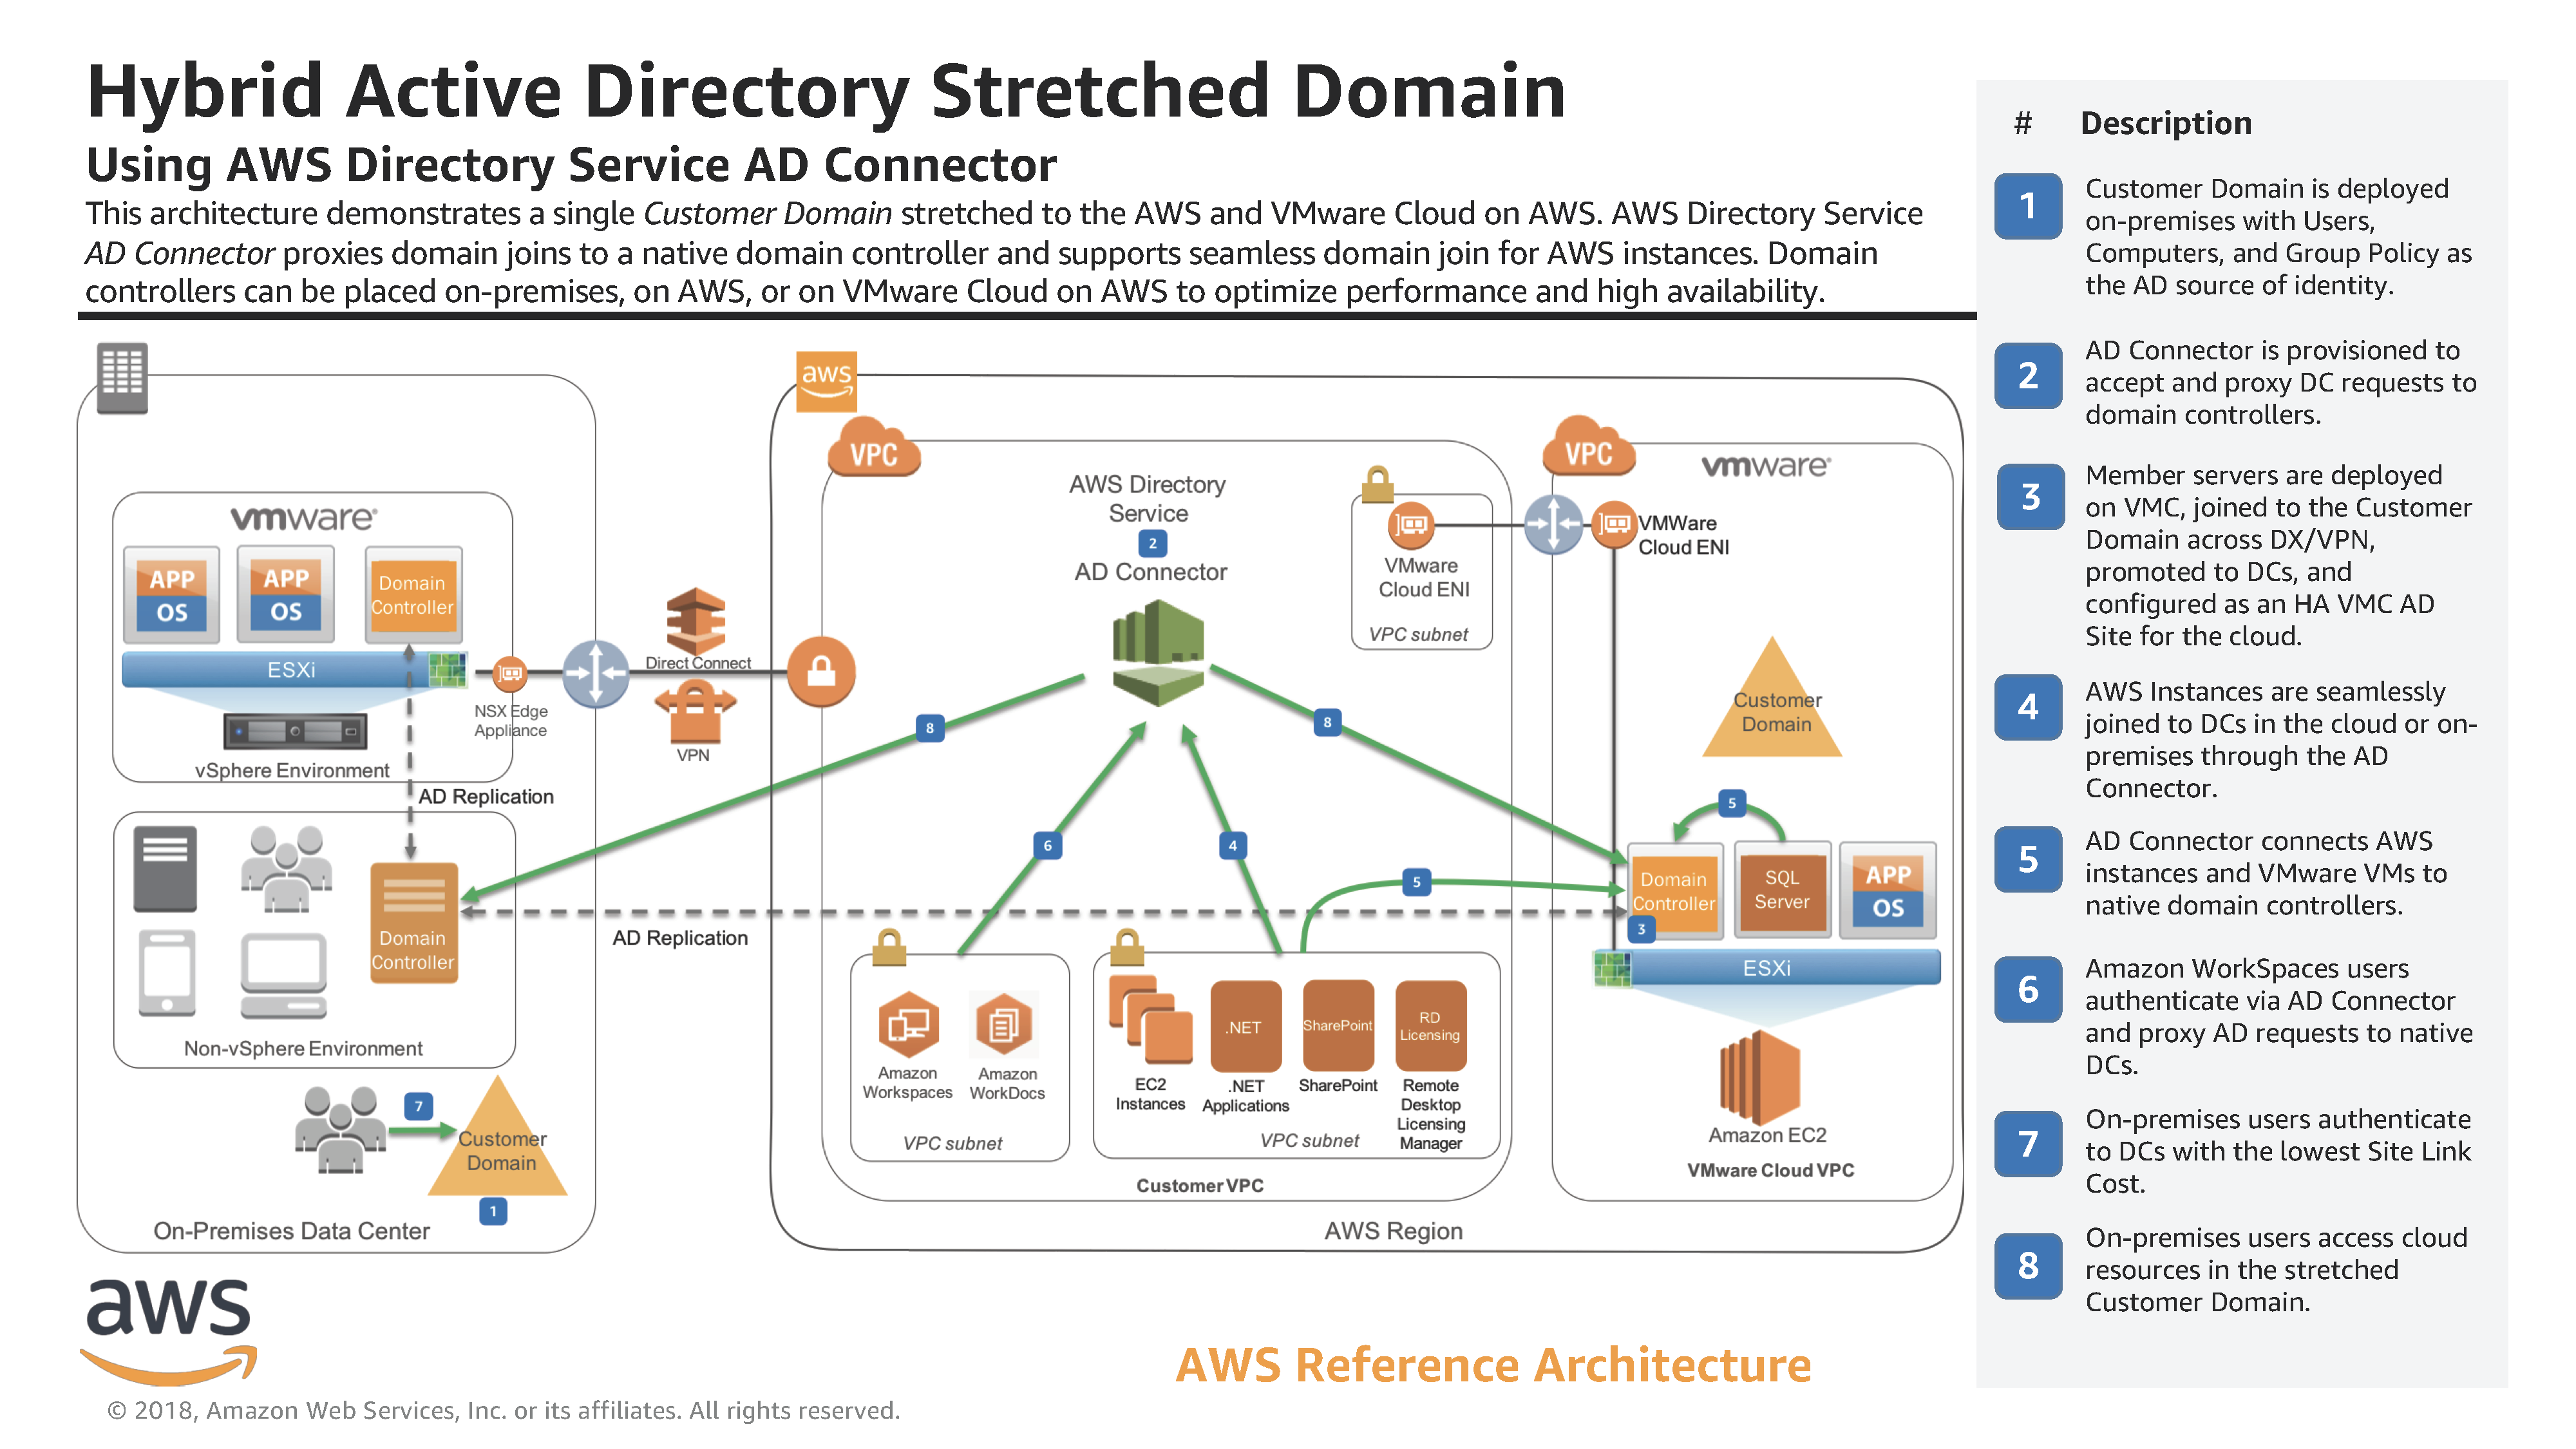 aws_reference_architecture_hybrid_active_directory_stretched_domain